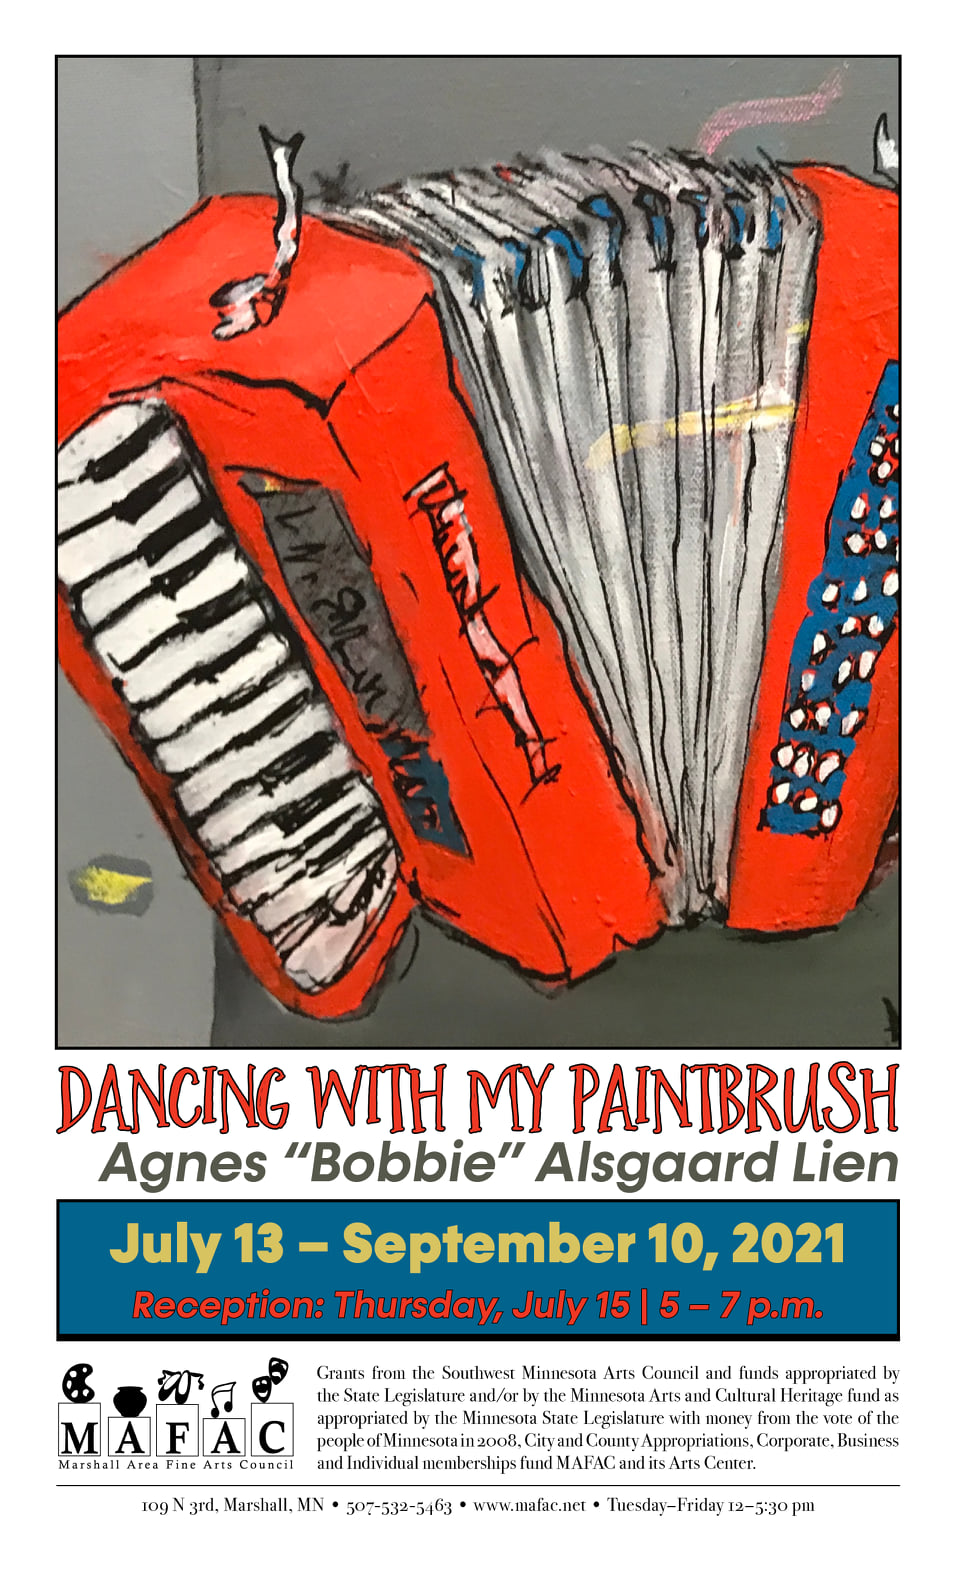 Painting of a red accordion.